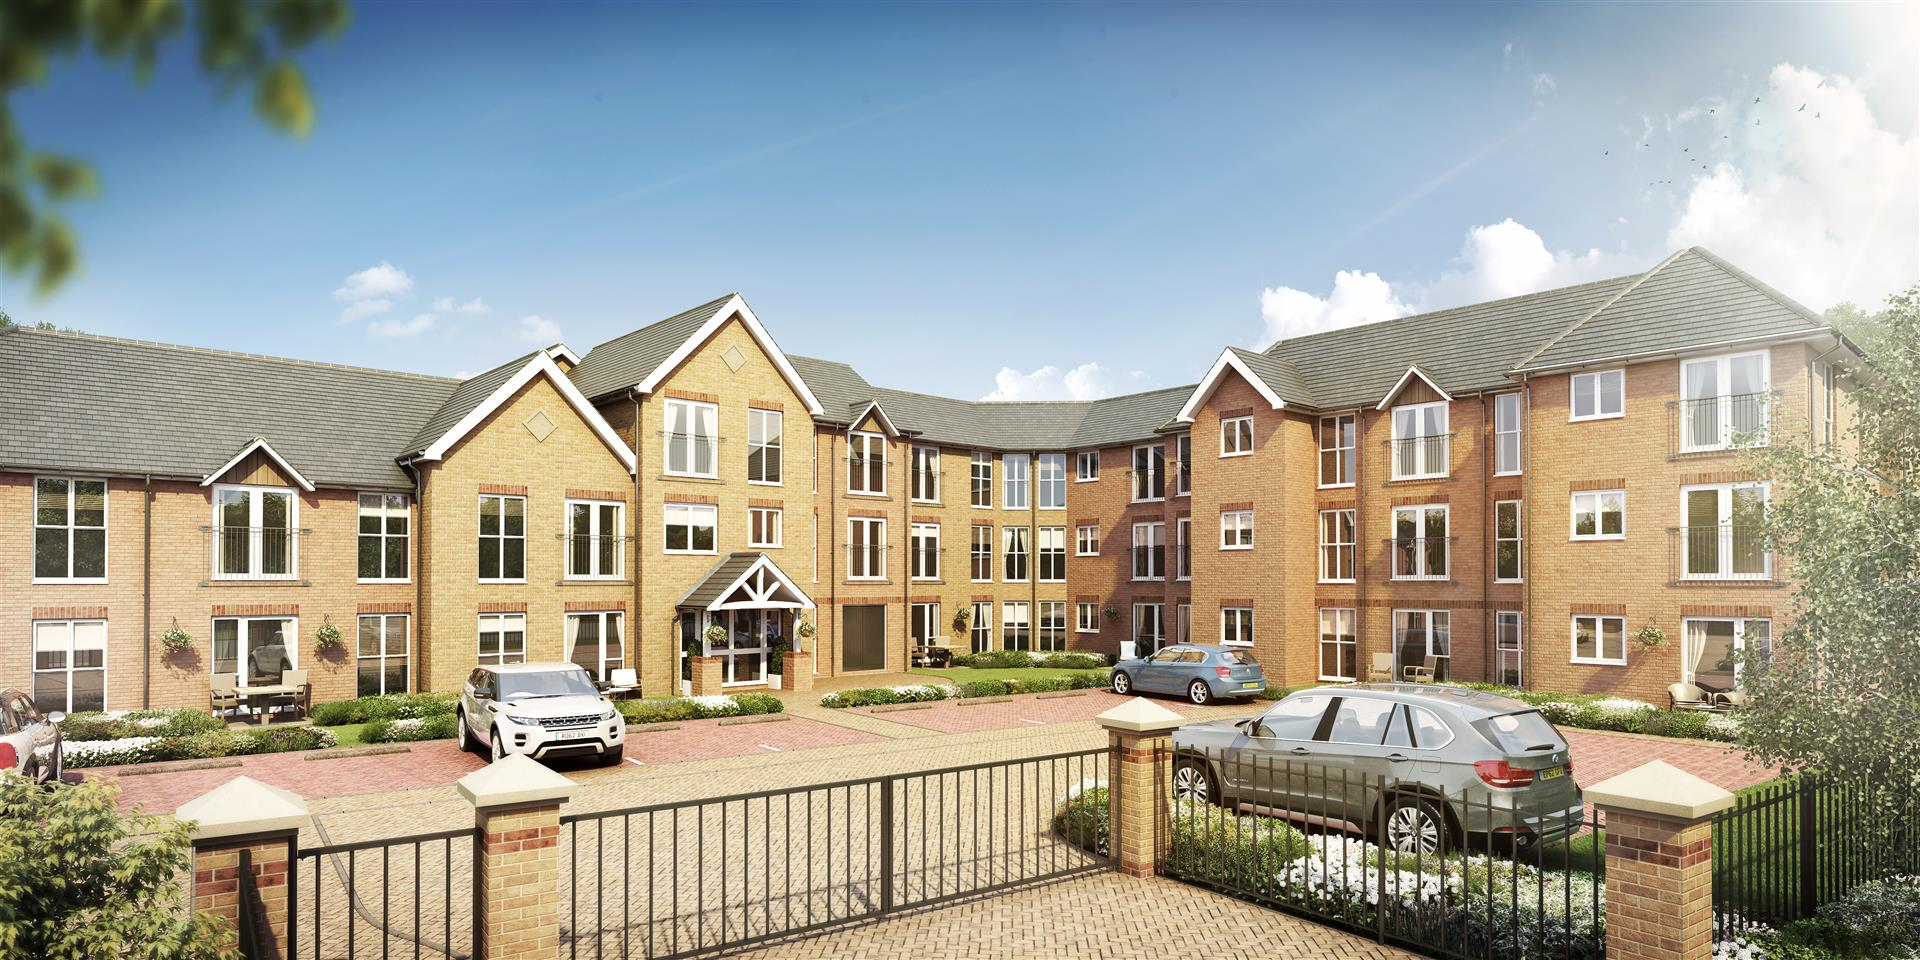 2 Bedrooms Apartment Flat for sale in Hickings Lane, Stapleford